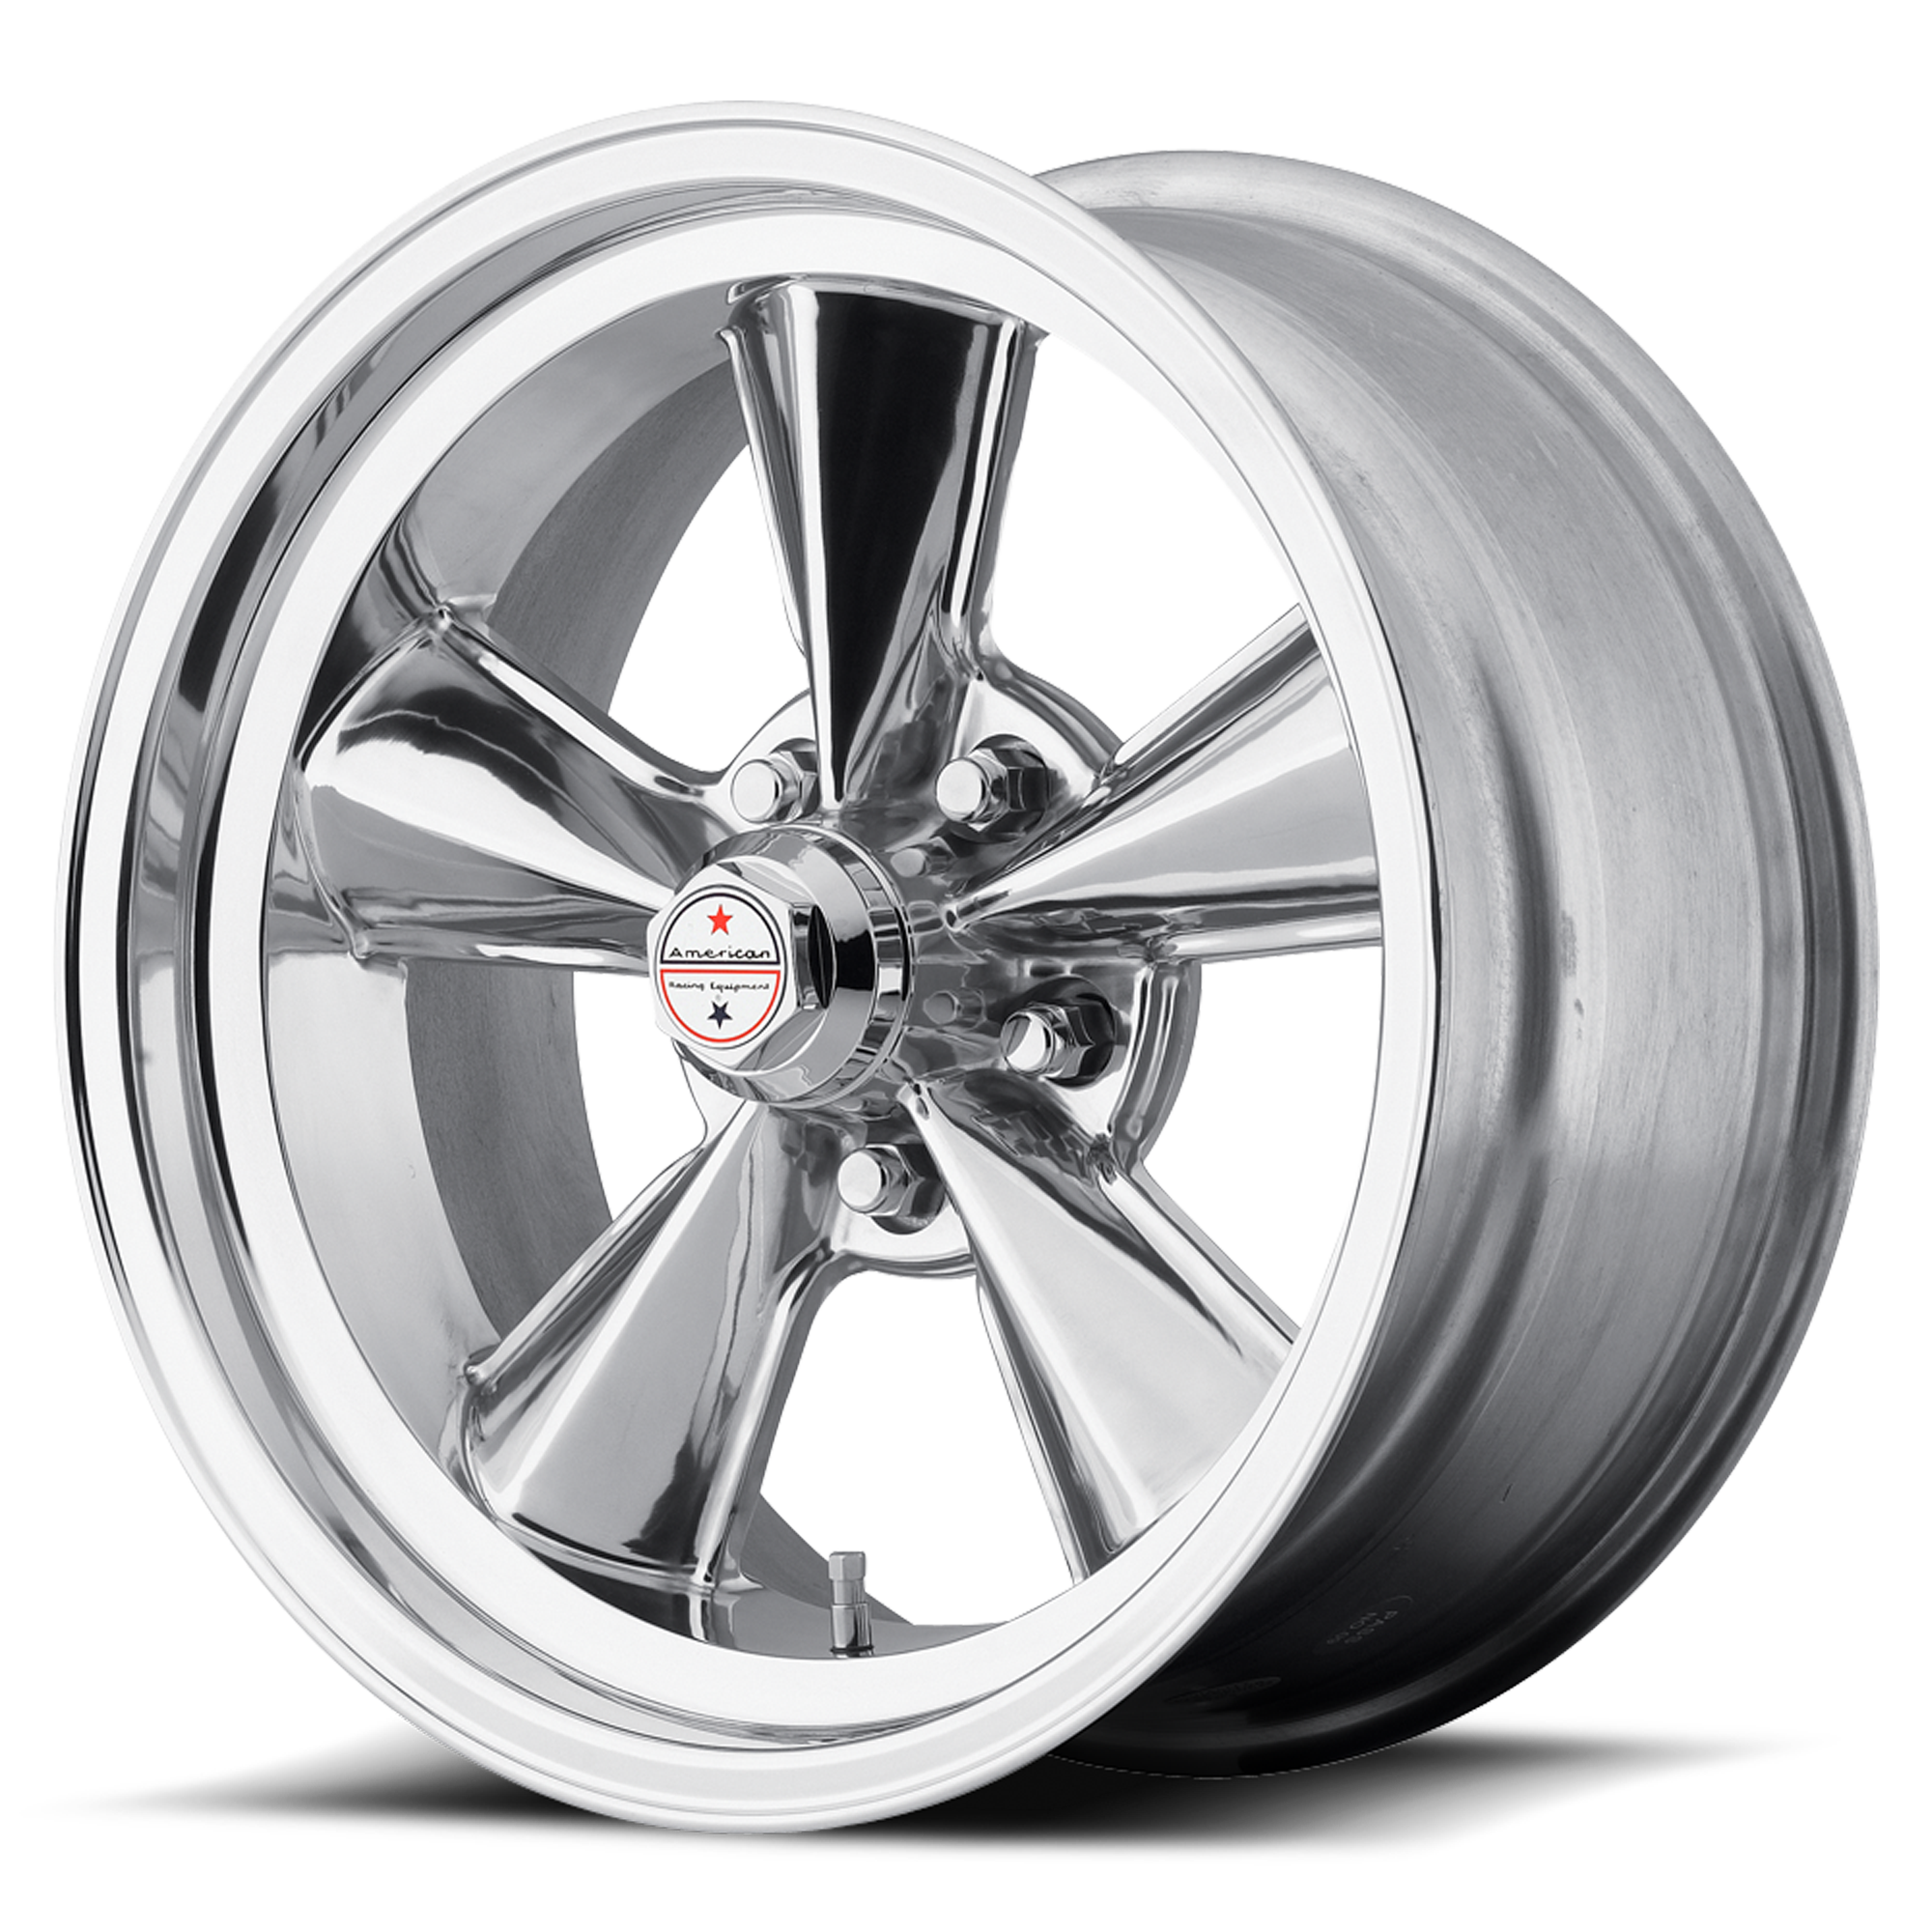 American Racing Wheels VNT71R Polished